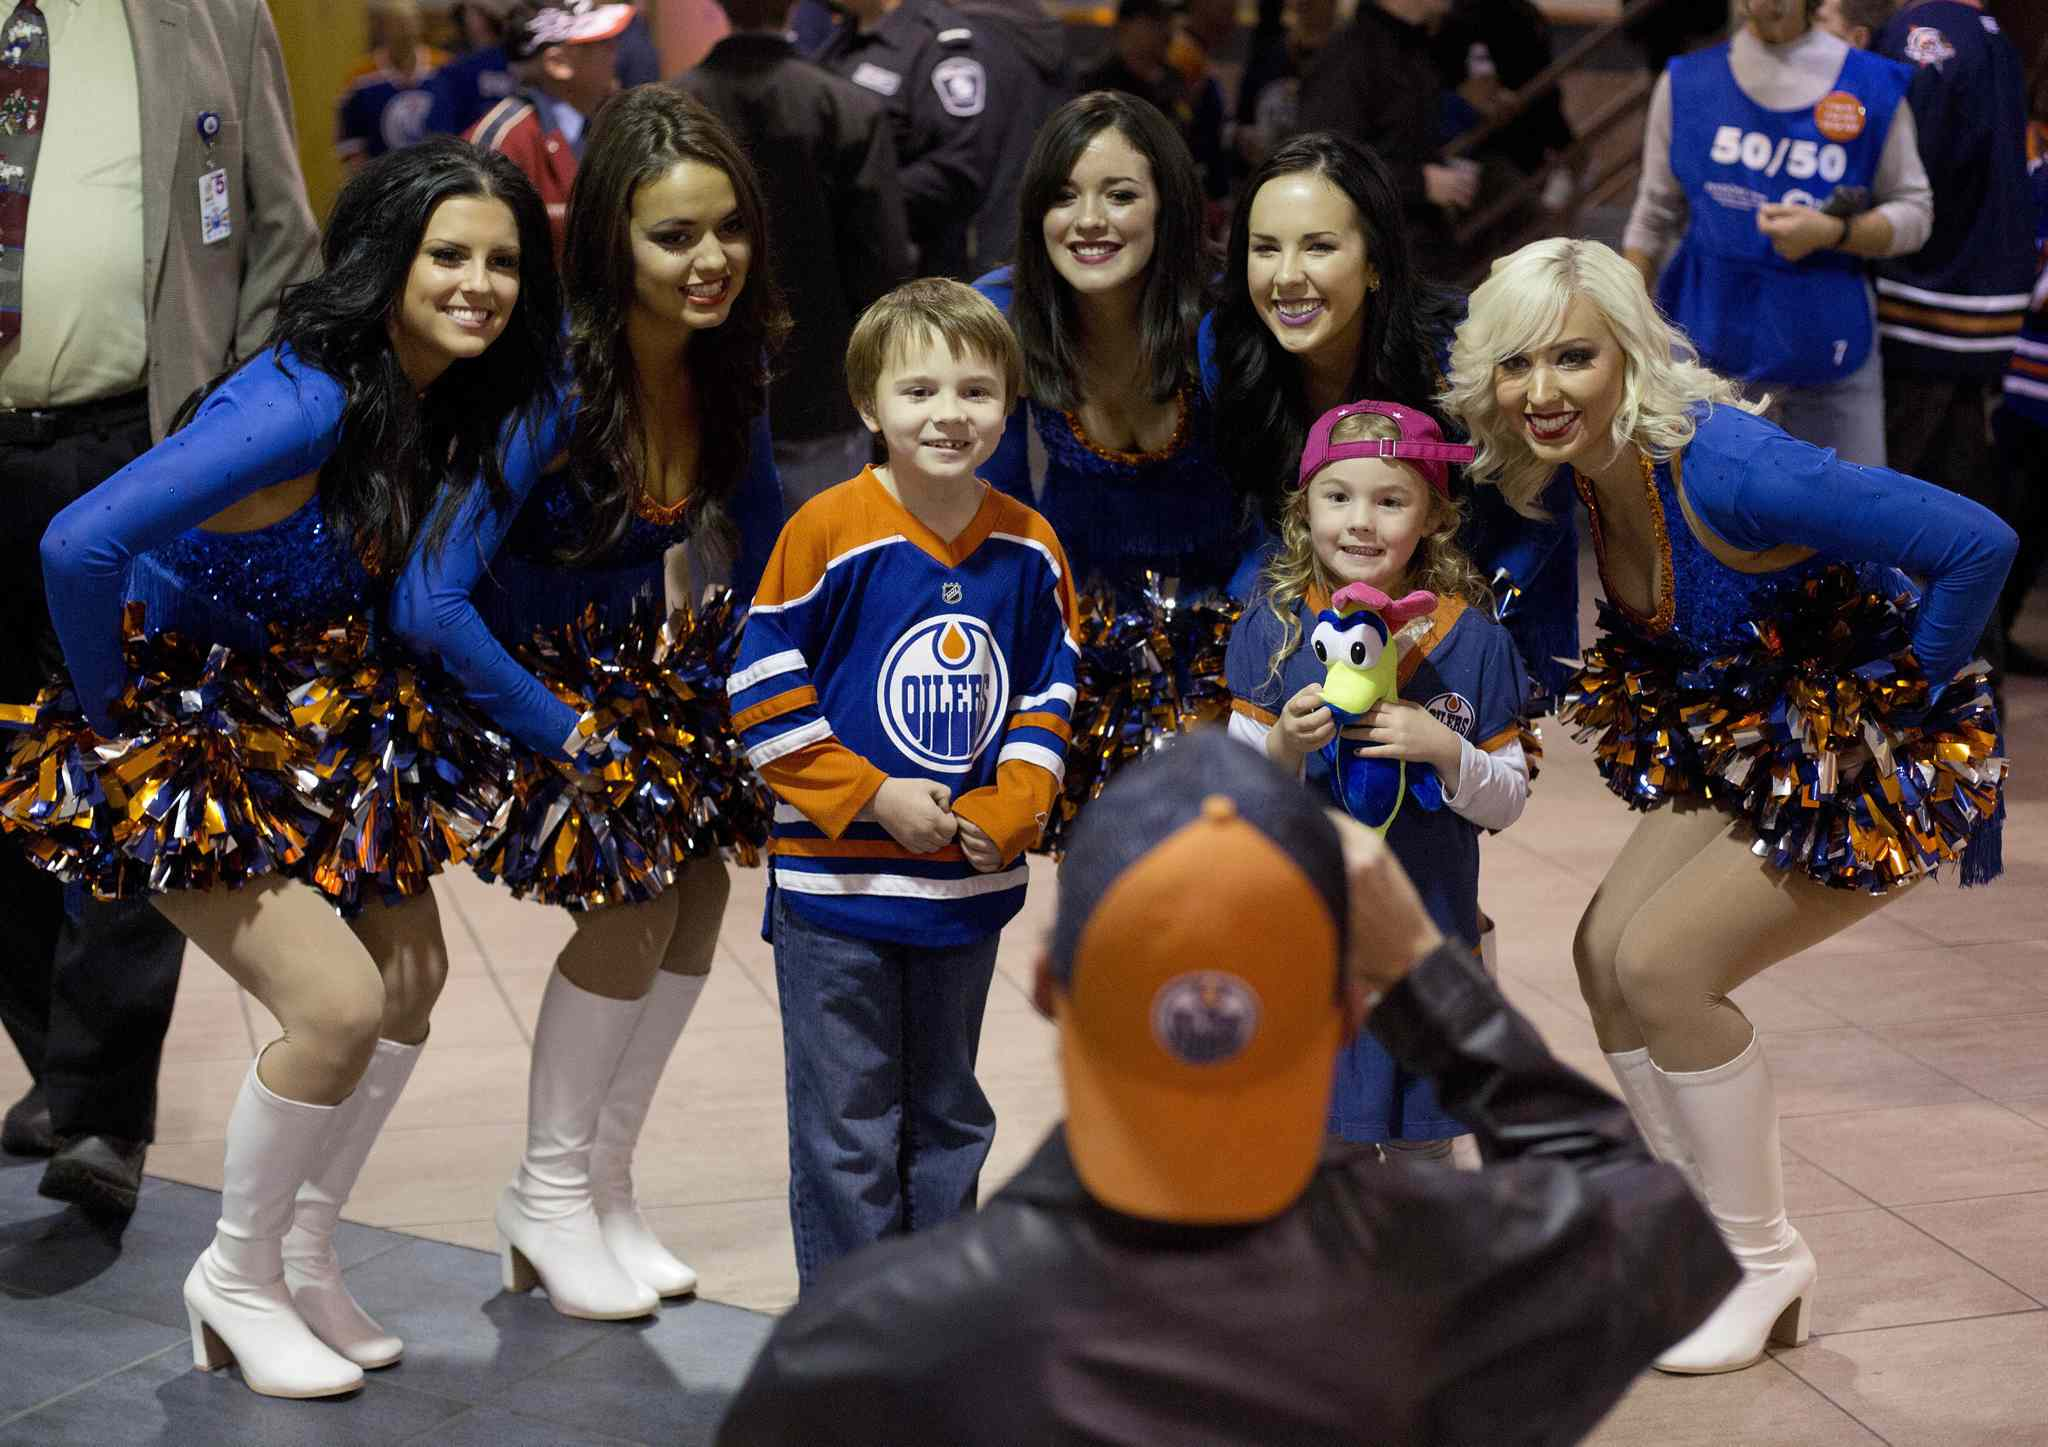 Edmonton Oilers fans get their photo taken with the Oilers cheerleaders Tuesday. The Edmonton Oilers took on the Winnipeg Jets in their home opener.